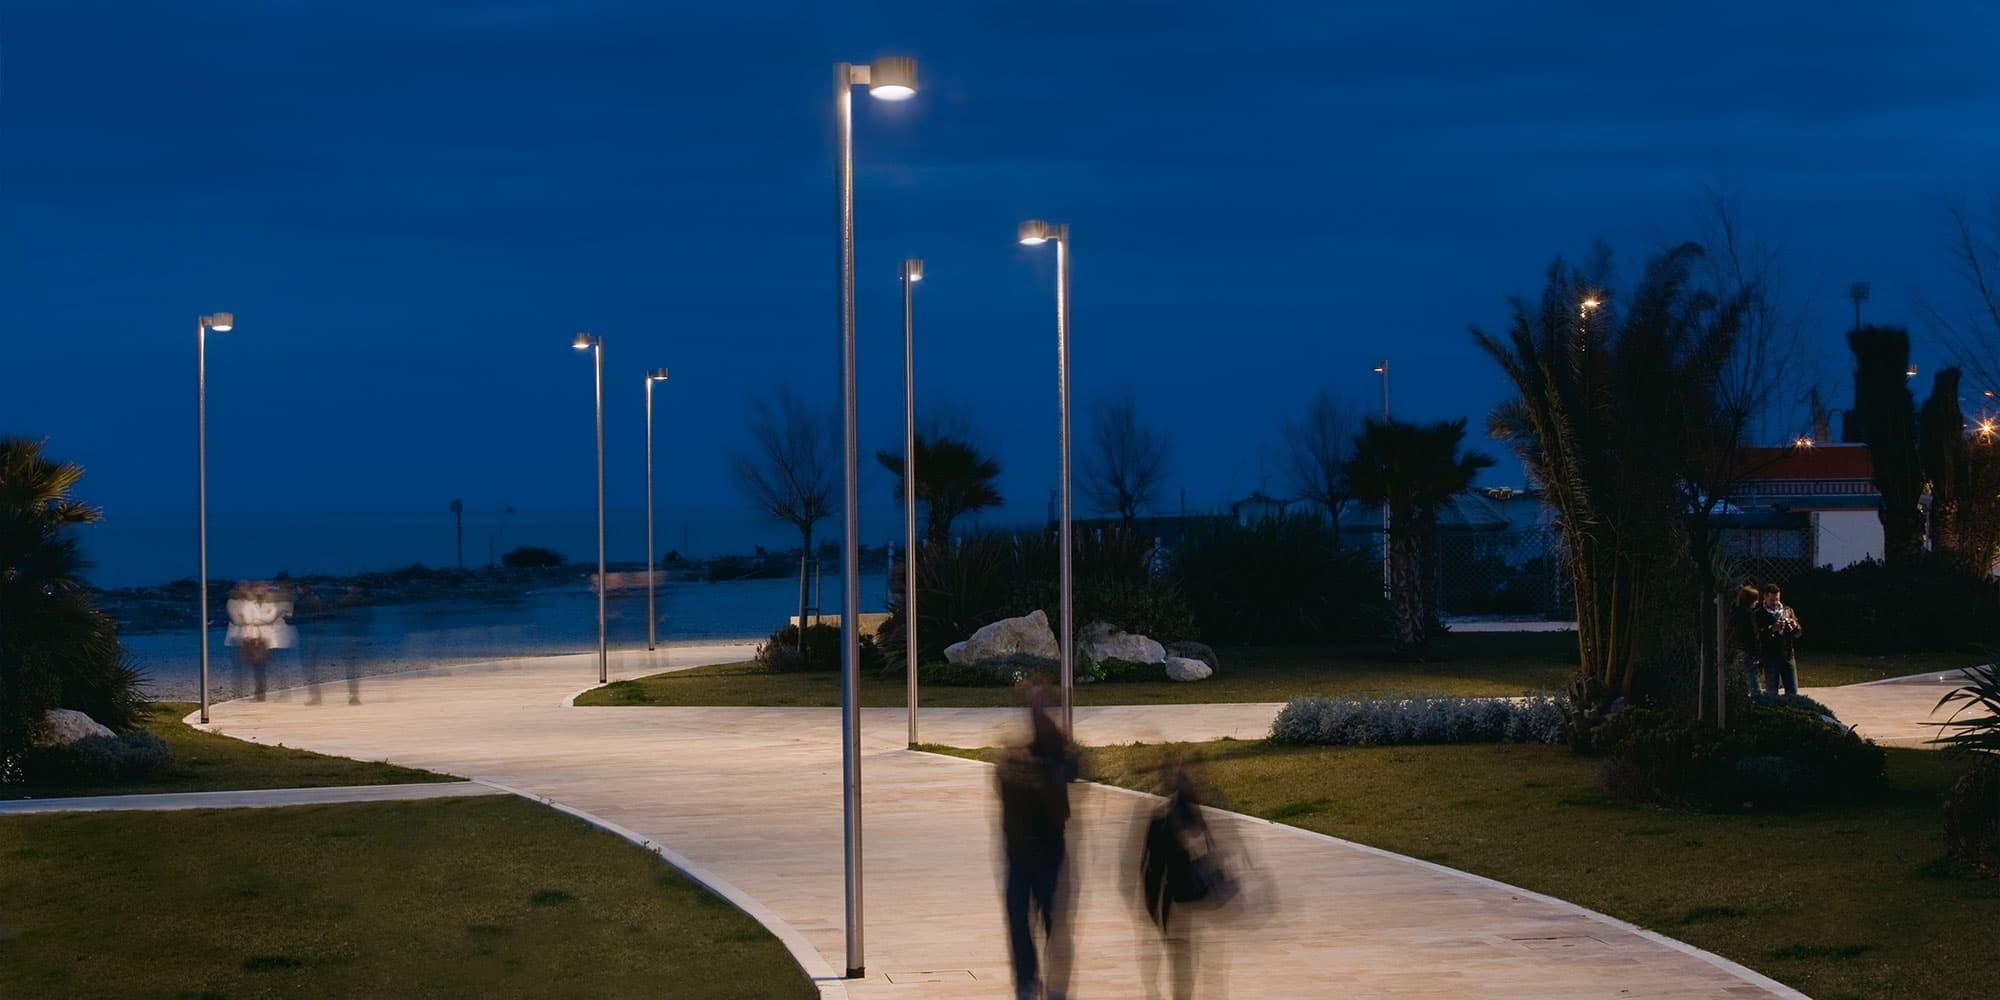 ASB COMUNICAZIONE - Stral Lighting Expertise